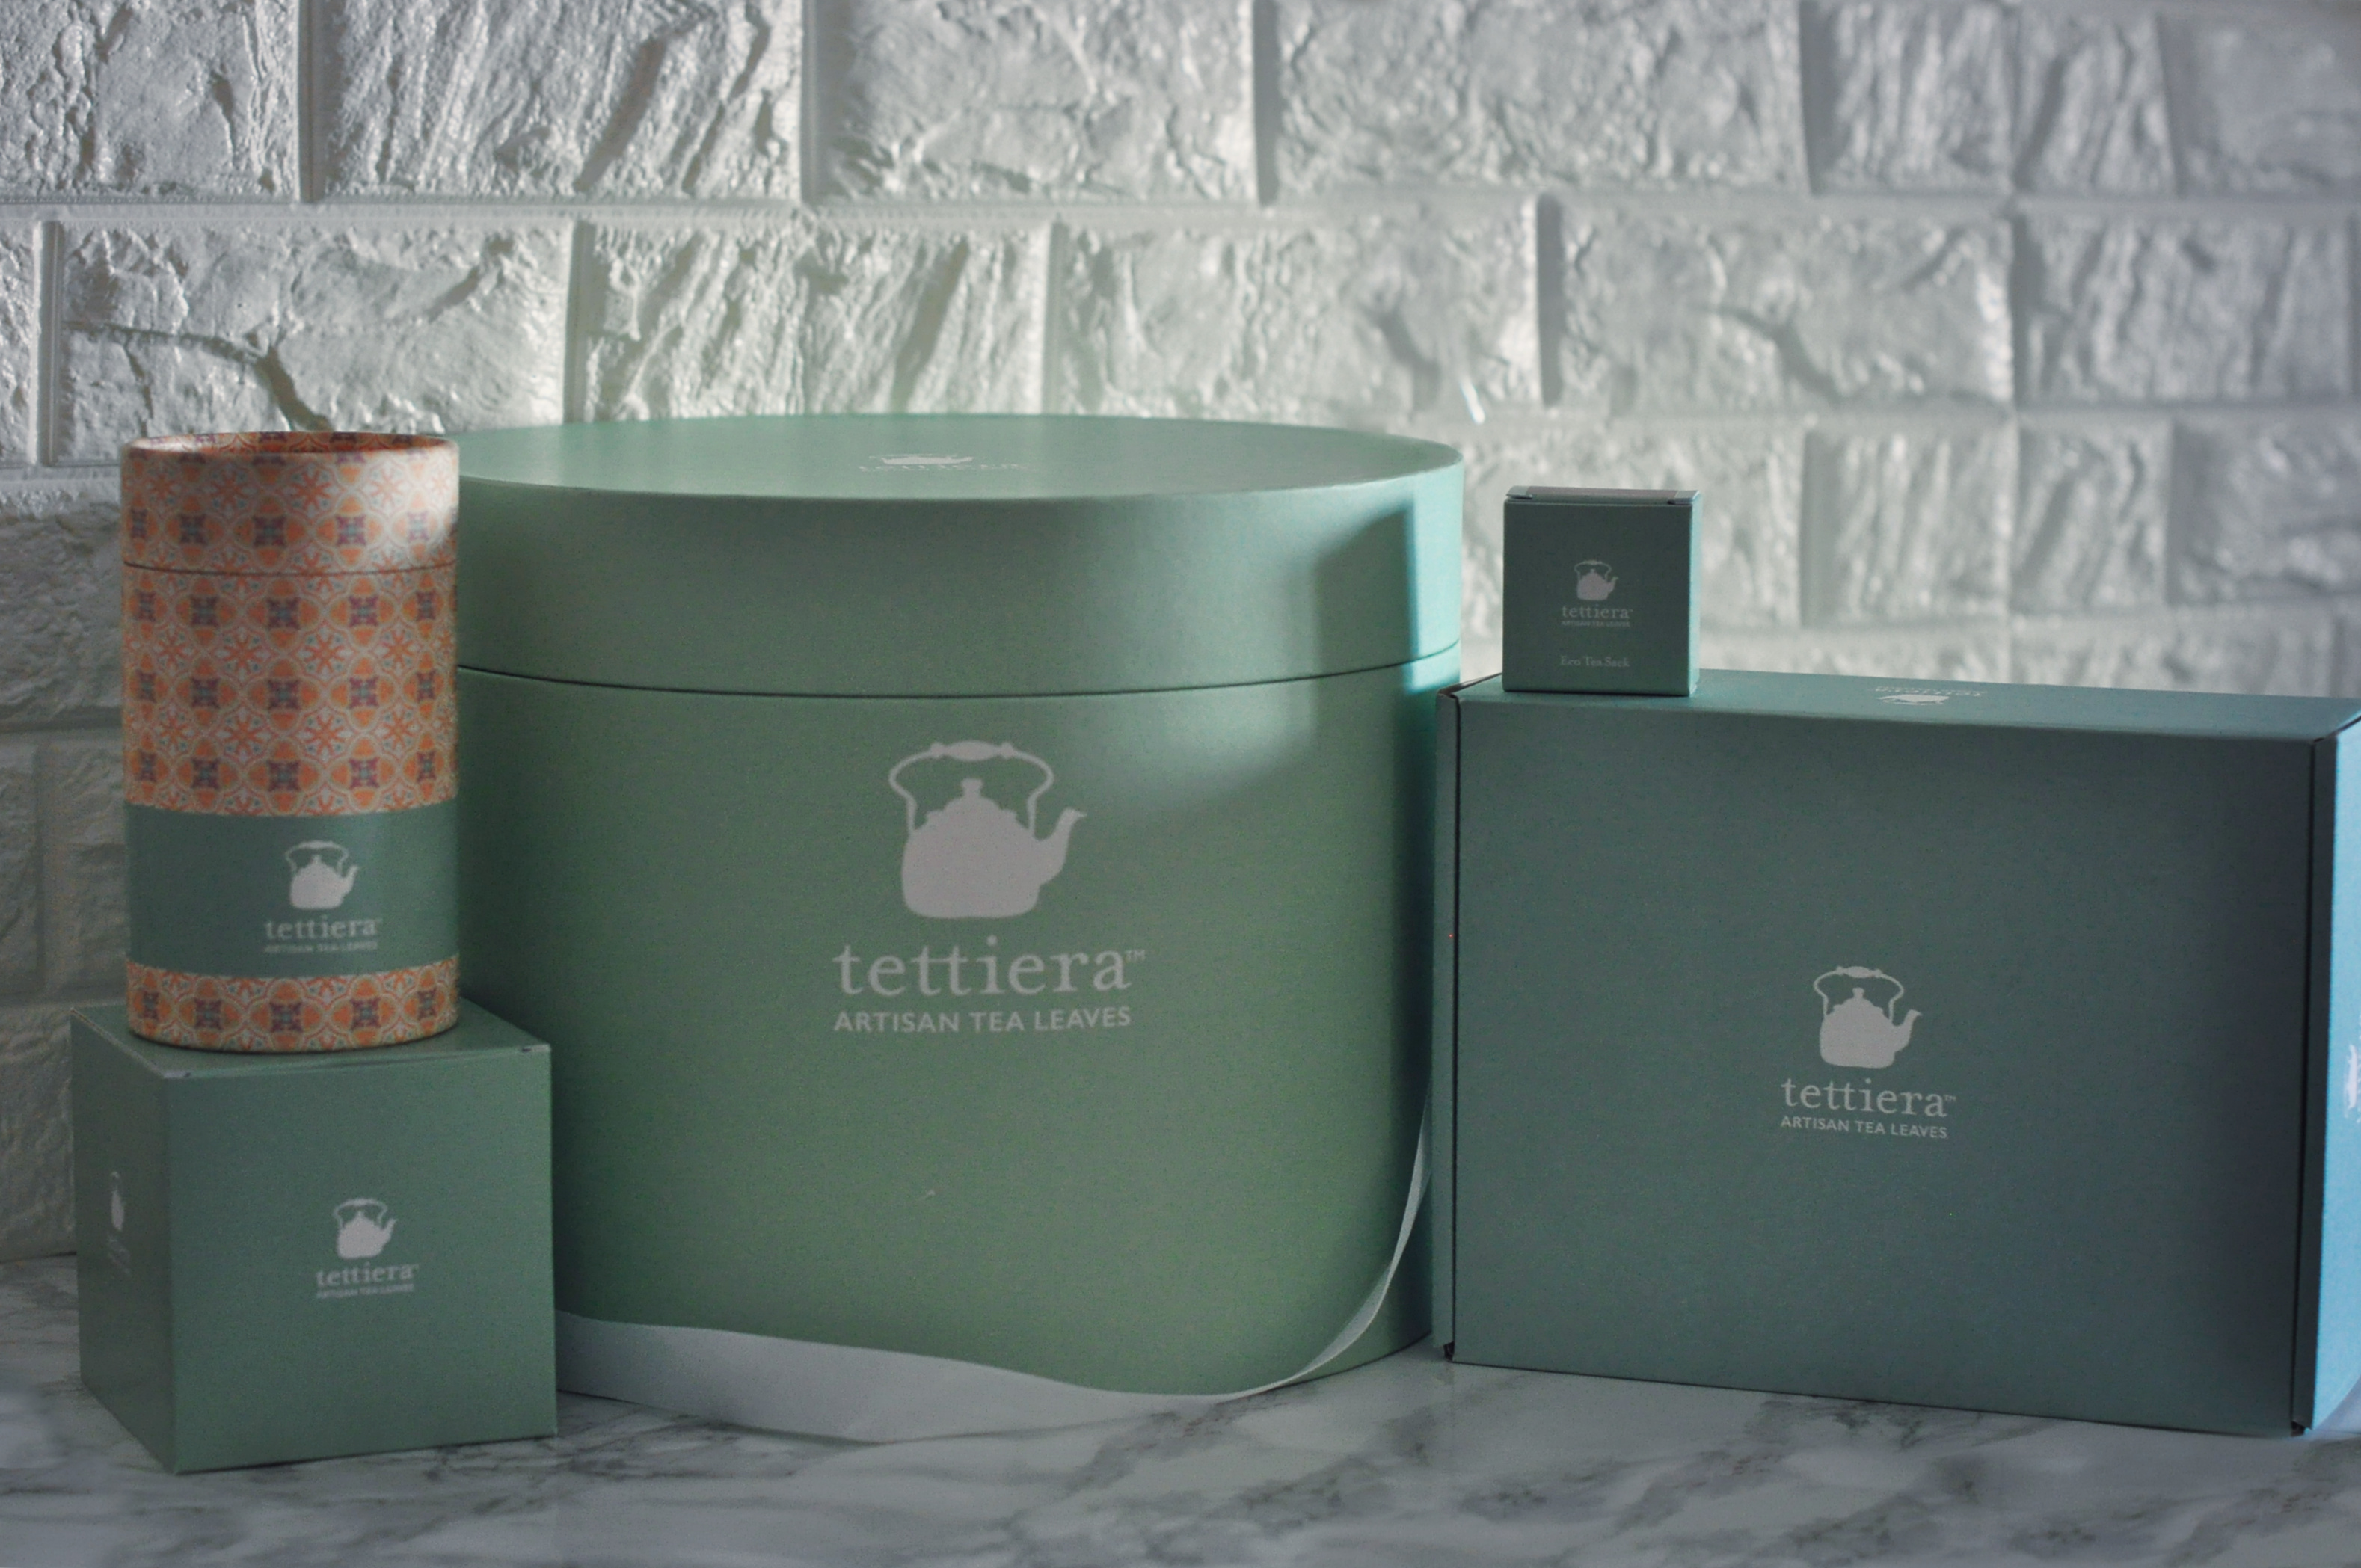 Tea Oriented Corporate Christmas Gifts